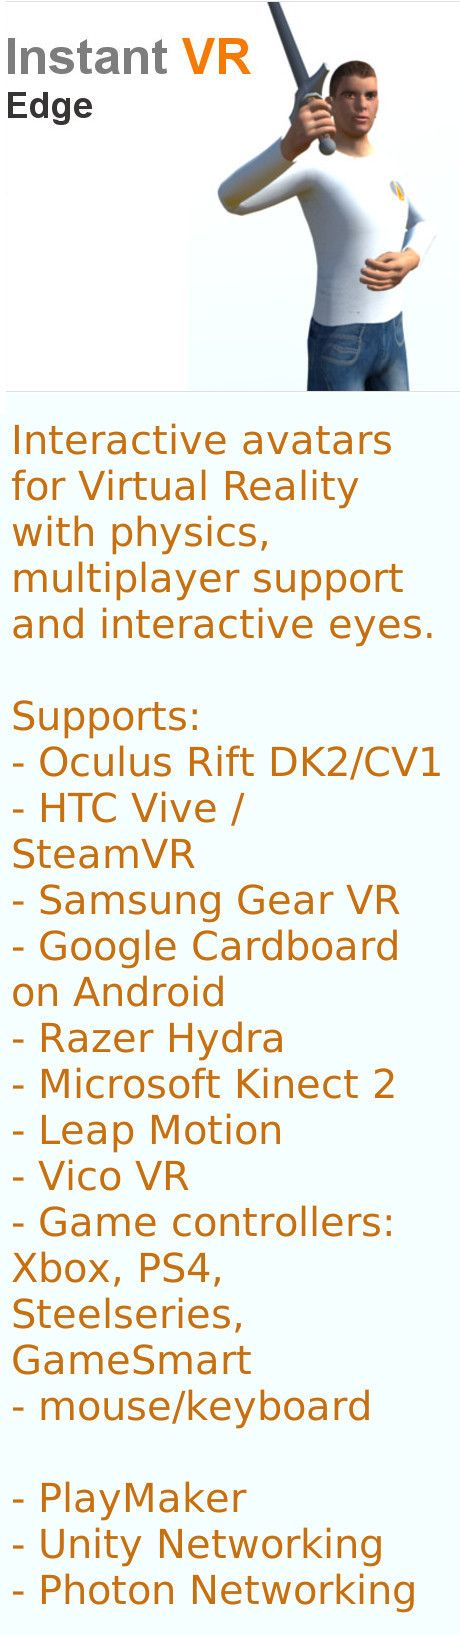 Instant VR. Interactive avatars for Virtual Reality with physics, multiplayer support and interactive eyes.  Supports: - Oculus Rift DK2/CV1 - HTC Vive / SteamVR - Samsung Gear VR - Google Cardboard on Android - Razer Hydra - Microsoft Kinect 2 - Leap Motion - Vico VR - Game controllers: Xbox, PS4, Steelseries, GameSmart - mouse/keyboard  - PlayMaker - Unity Networking - Photon Networking